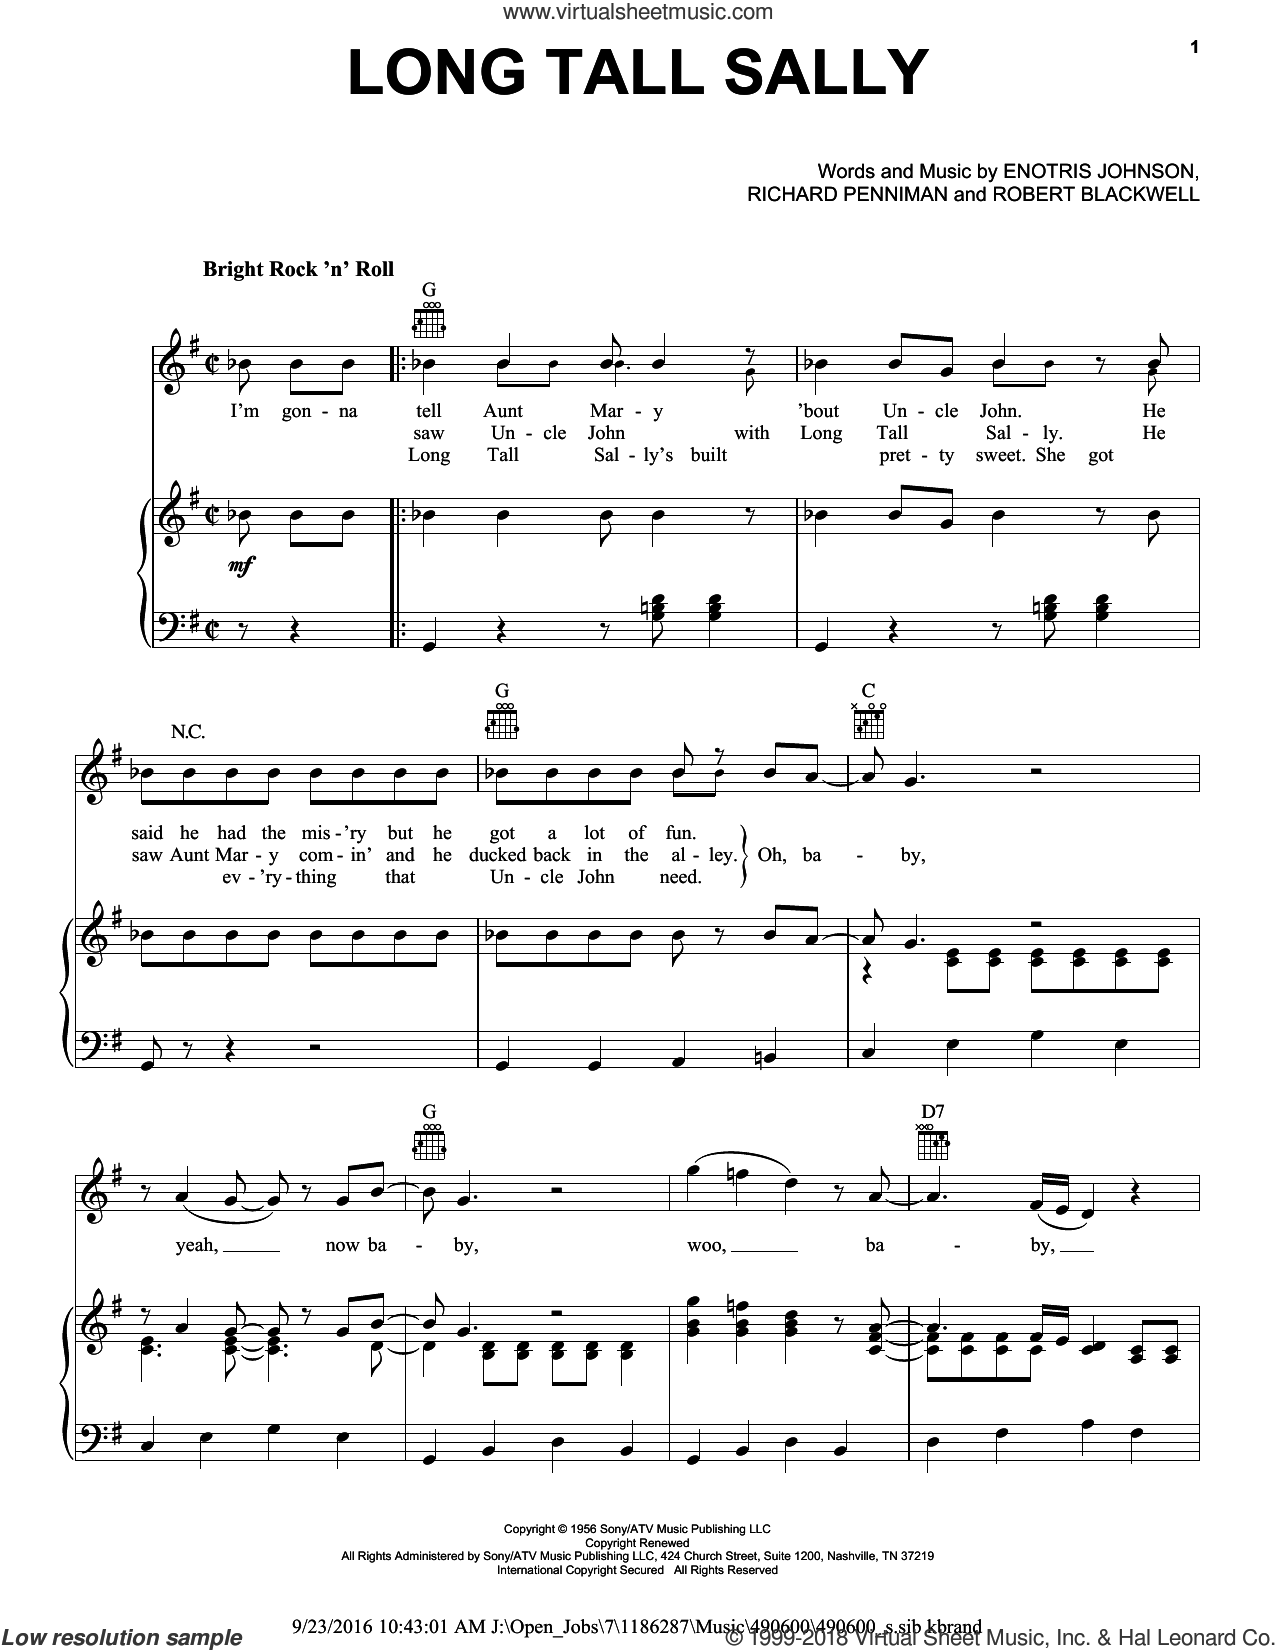 Long Tall Sally sheet music for voice, piano or guitar by The Beatles, Little Richard, Pat Boone, Enotris Johnson, Richard Penniman and Robert Blackwell, intermediate. Score Image Preview.